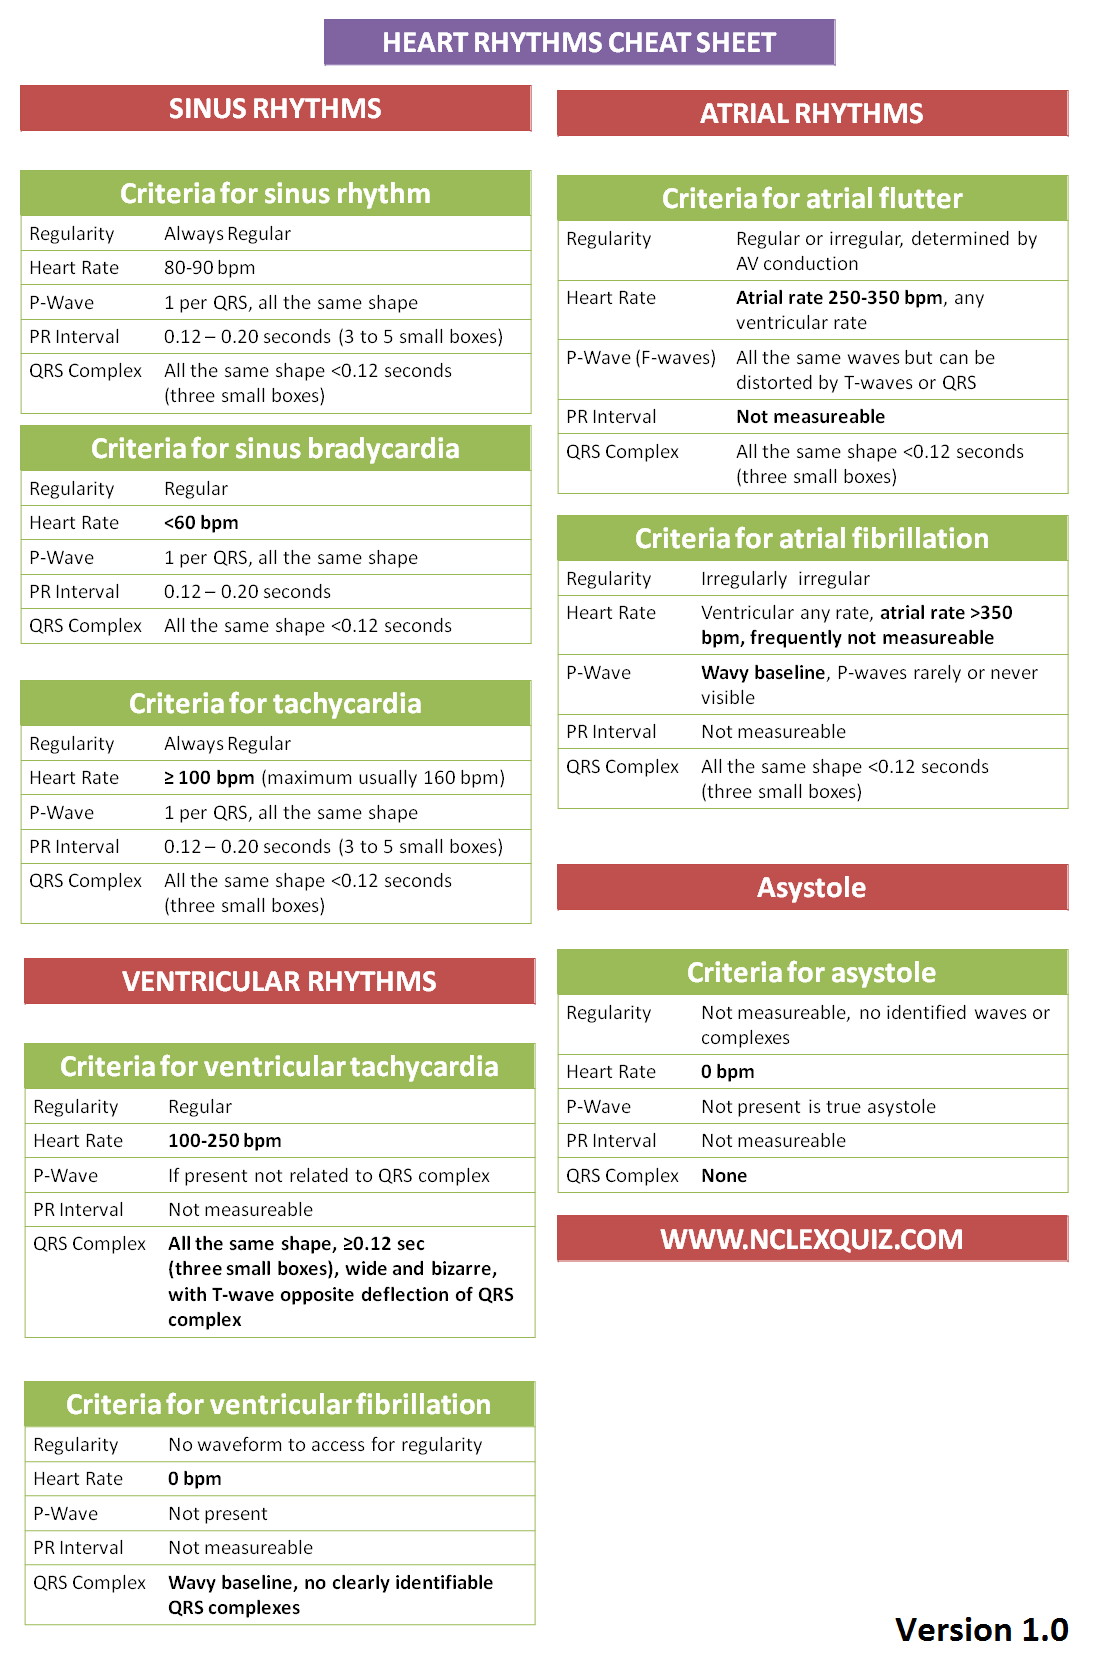 Criteria For Interpreting Cardiac Rhythms Cheatsheet